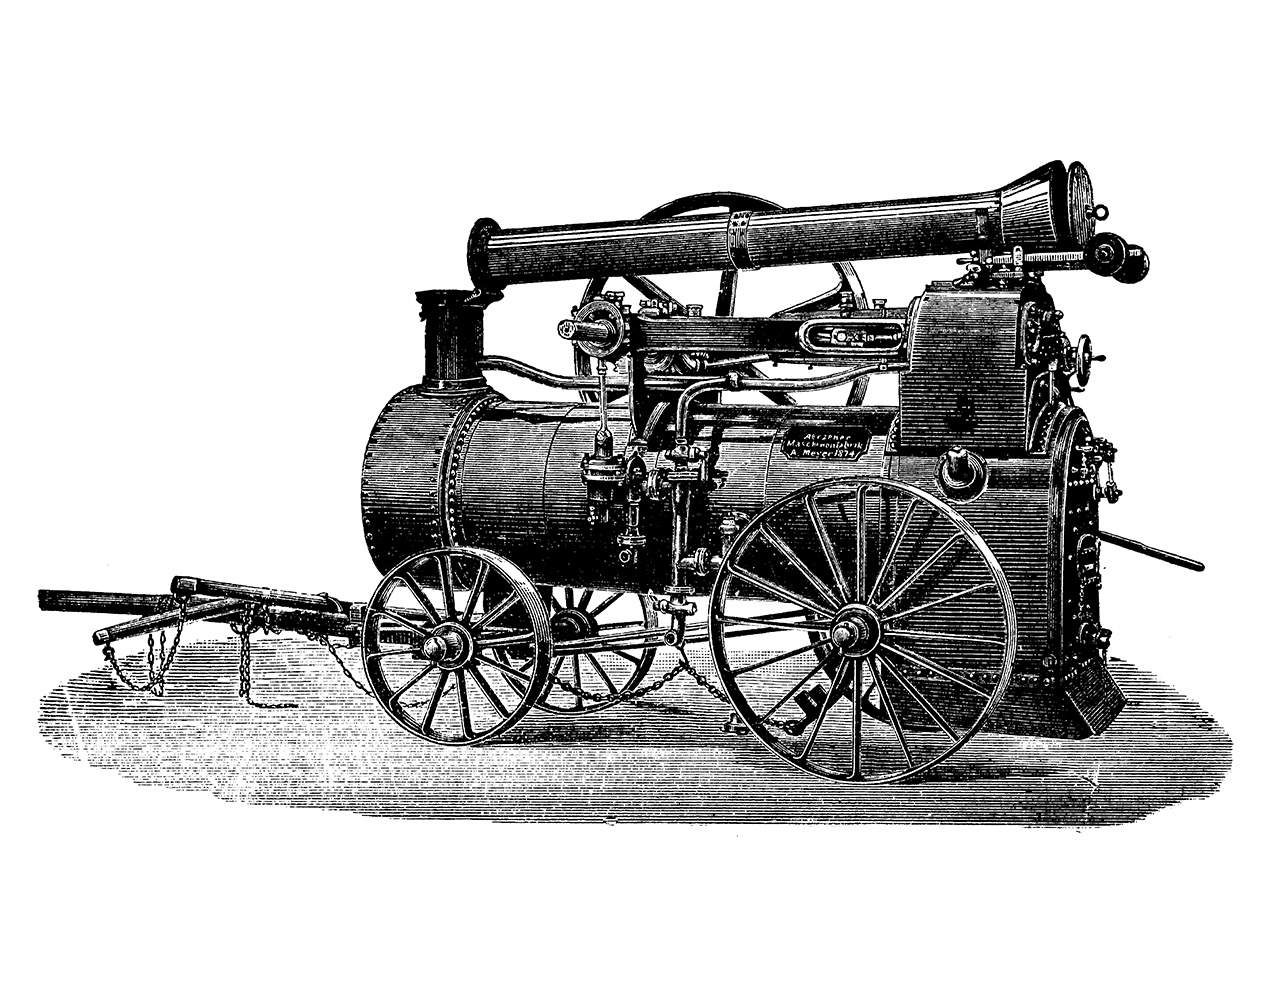 One of the first AERZEN units